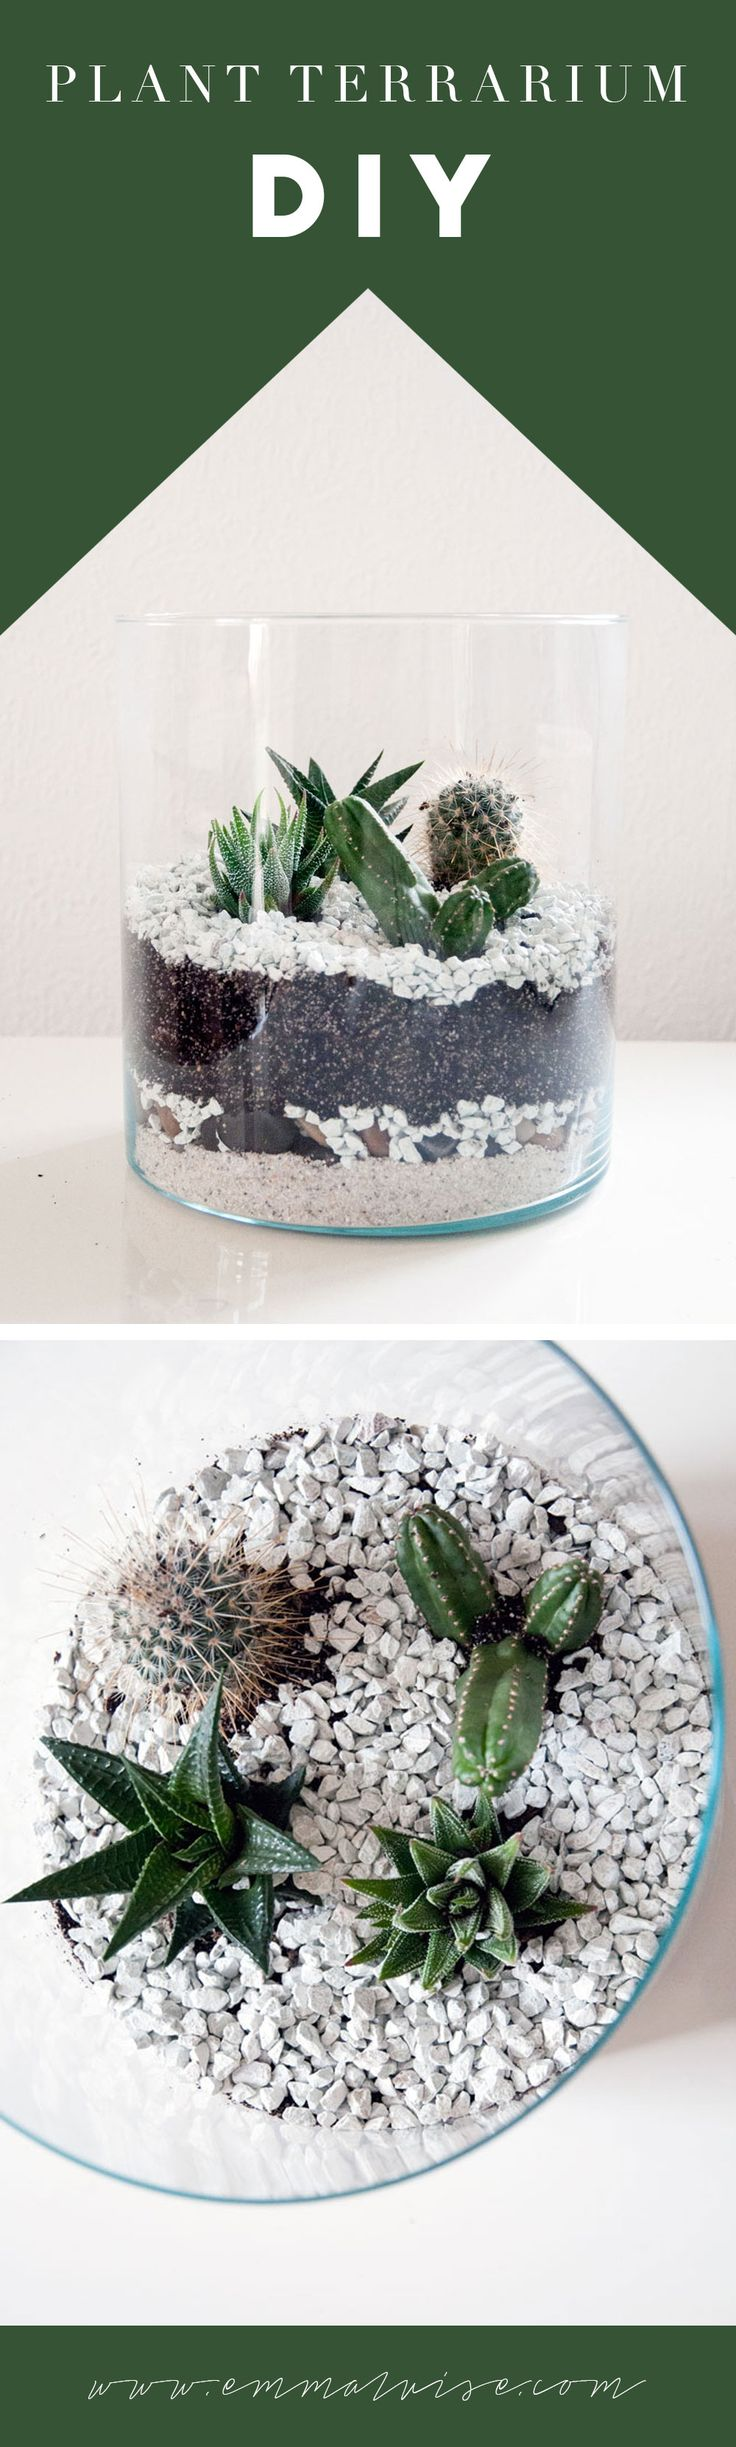 DIY: Kaktus Terrarium www.emmaluise.com (Diy Garden Vegetable)